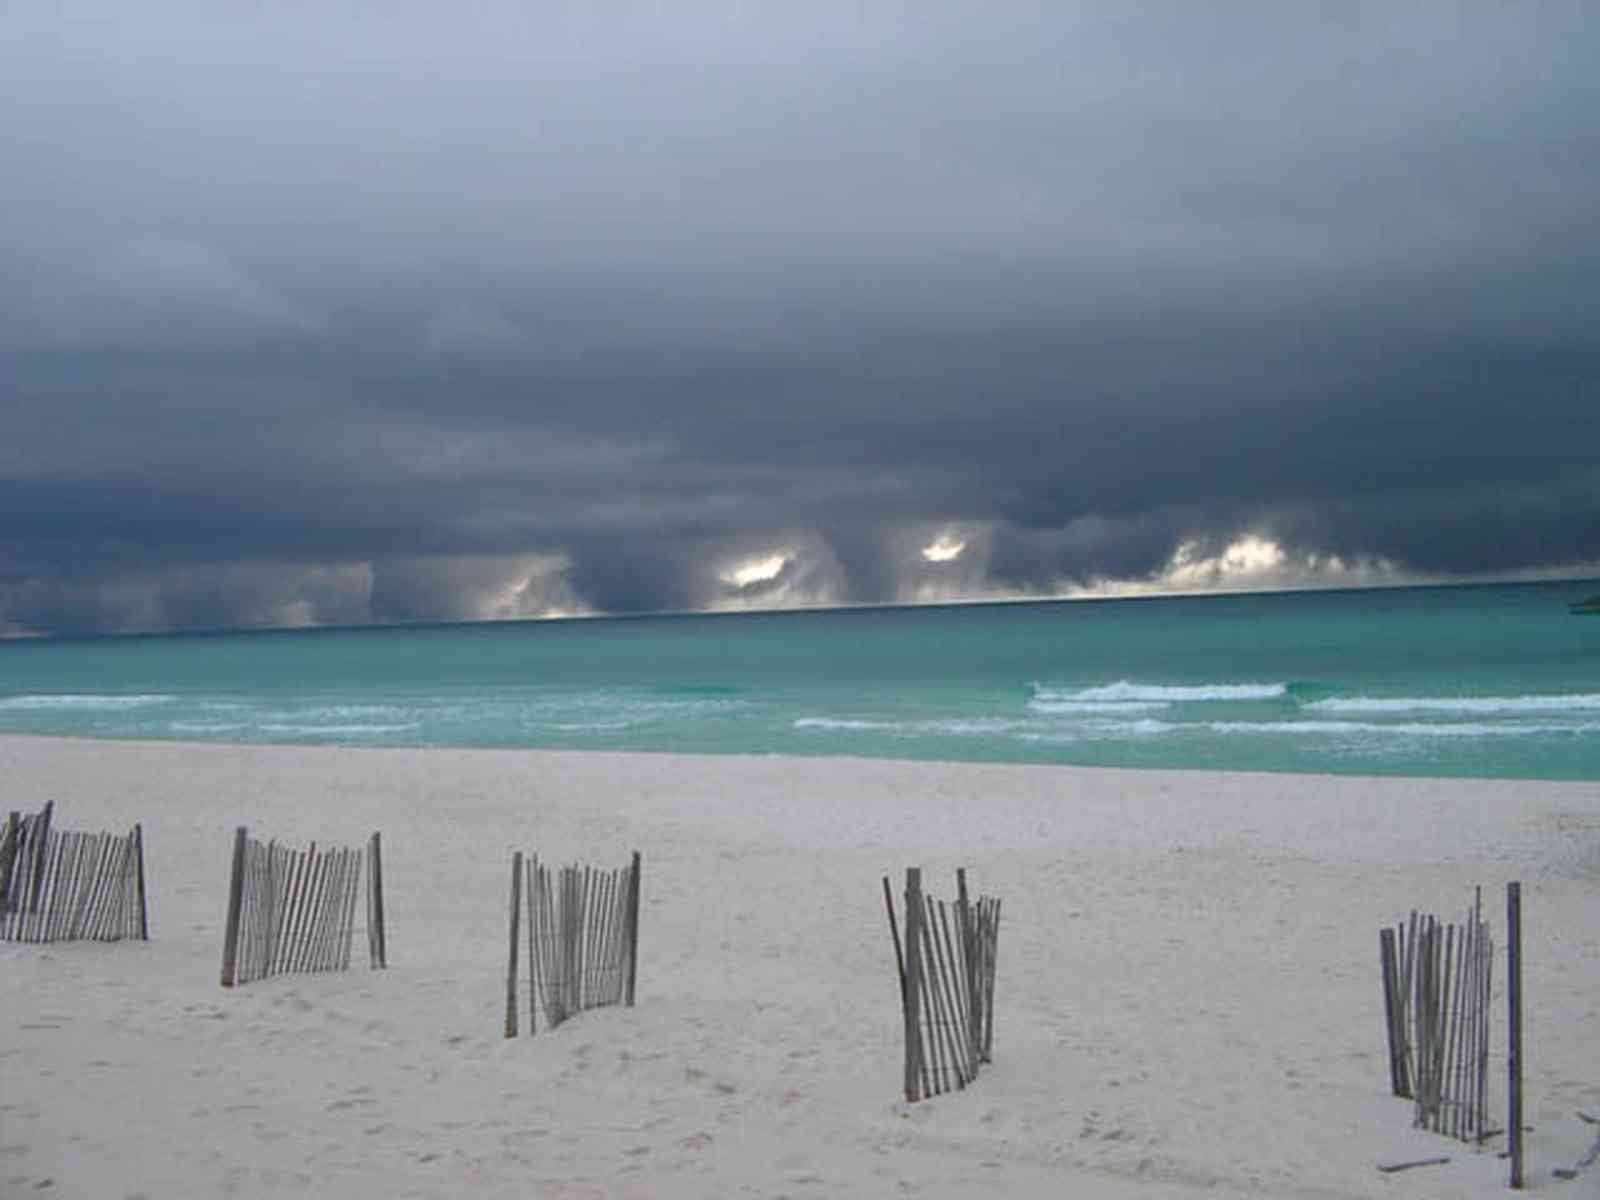 Pensacola-Beach:-Waterfront_13a.jpg:  weather front, storm, seashore,  beach, emerald water, dune fences, gulf of mexico, surf